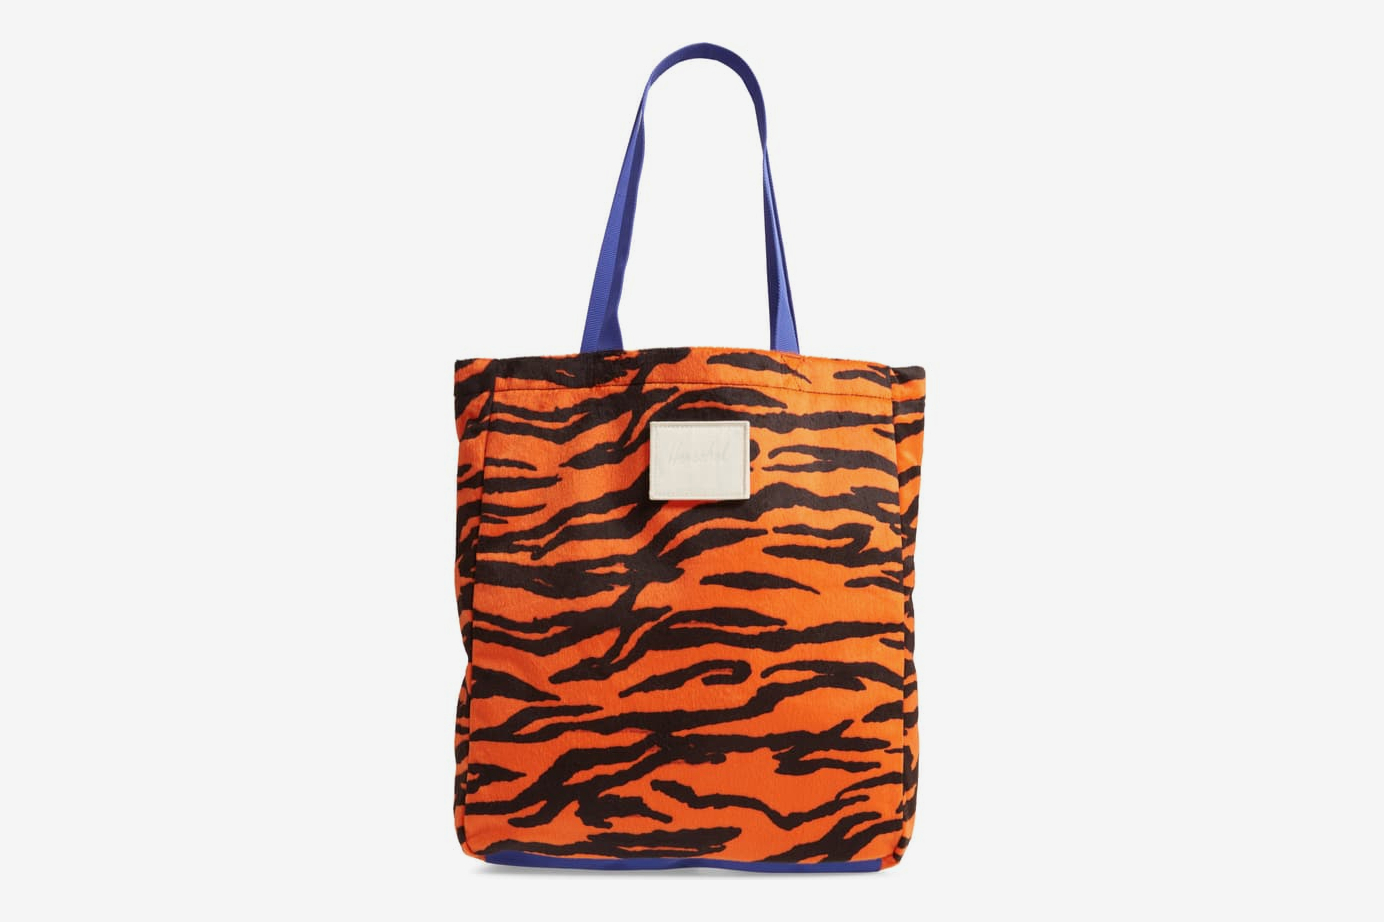 Herschel Supply Co. North/South Tote, Tiger/Royal Blue